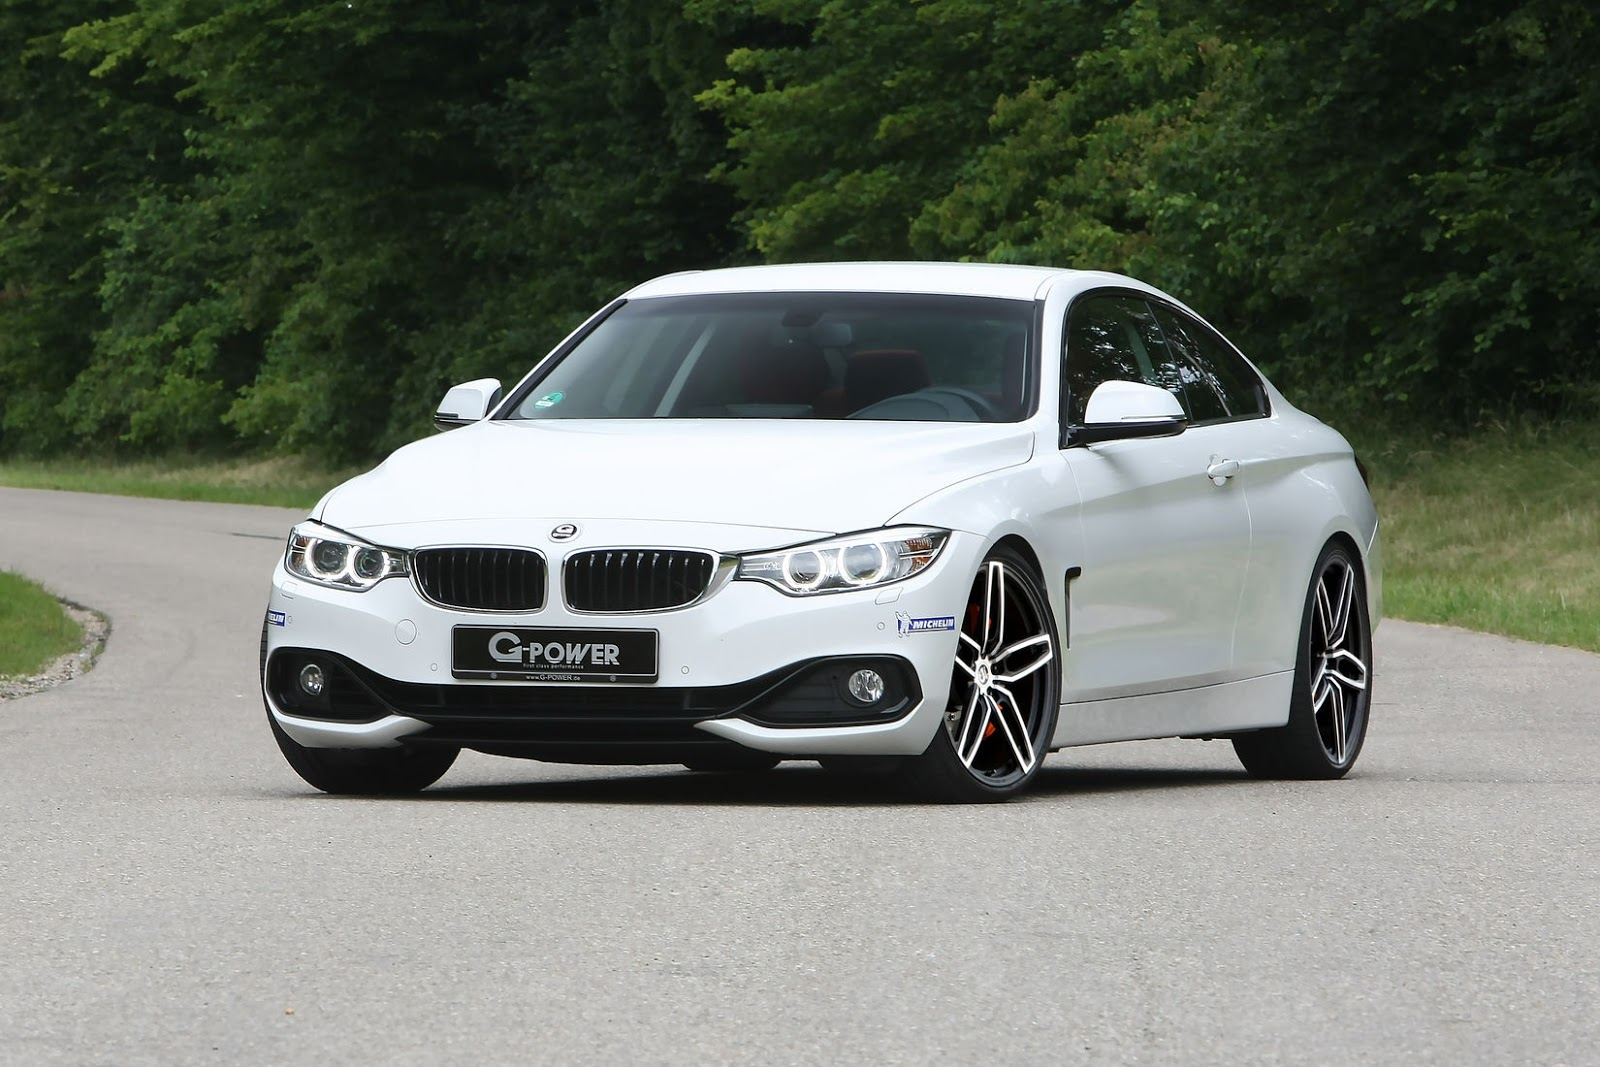 G Power 435d BMW 1